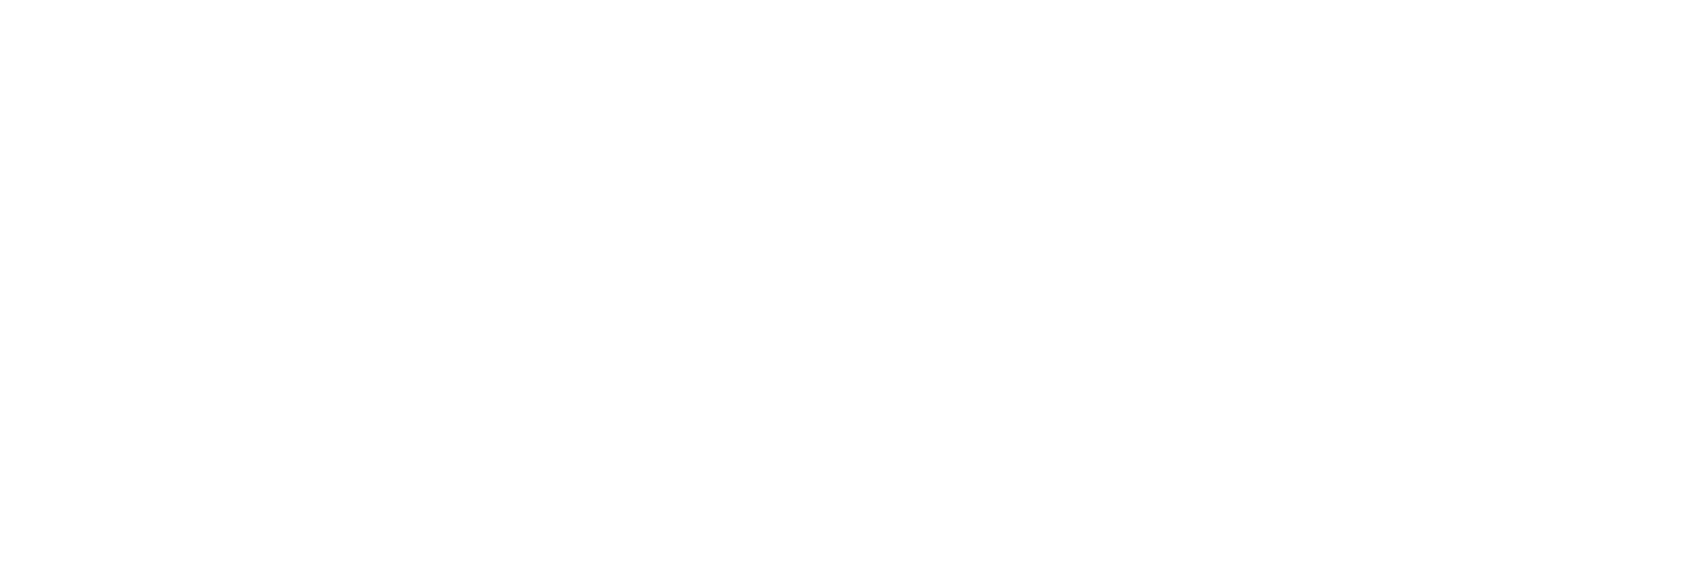 Canadian Constitution Foundation